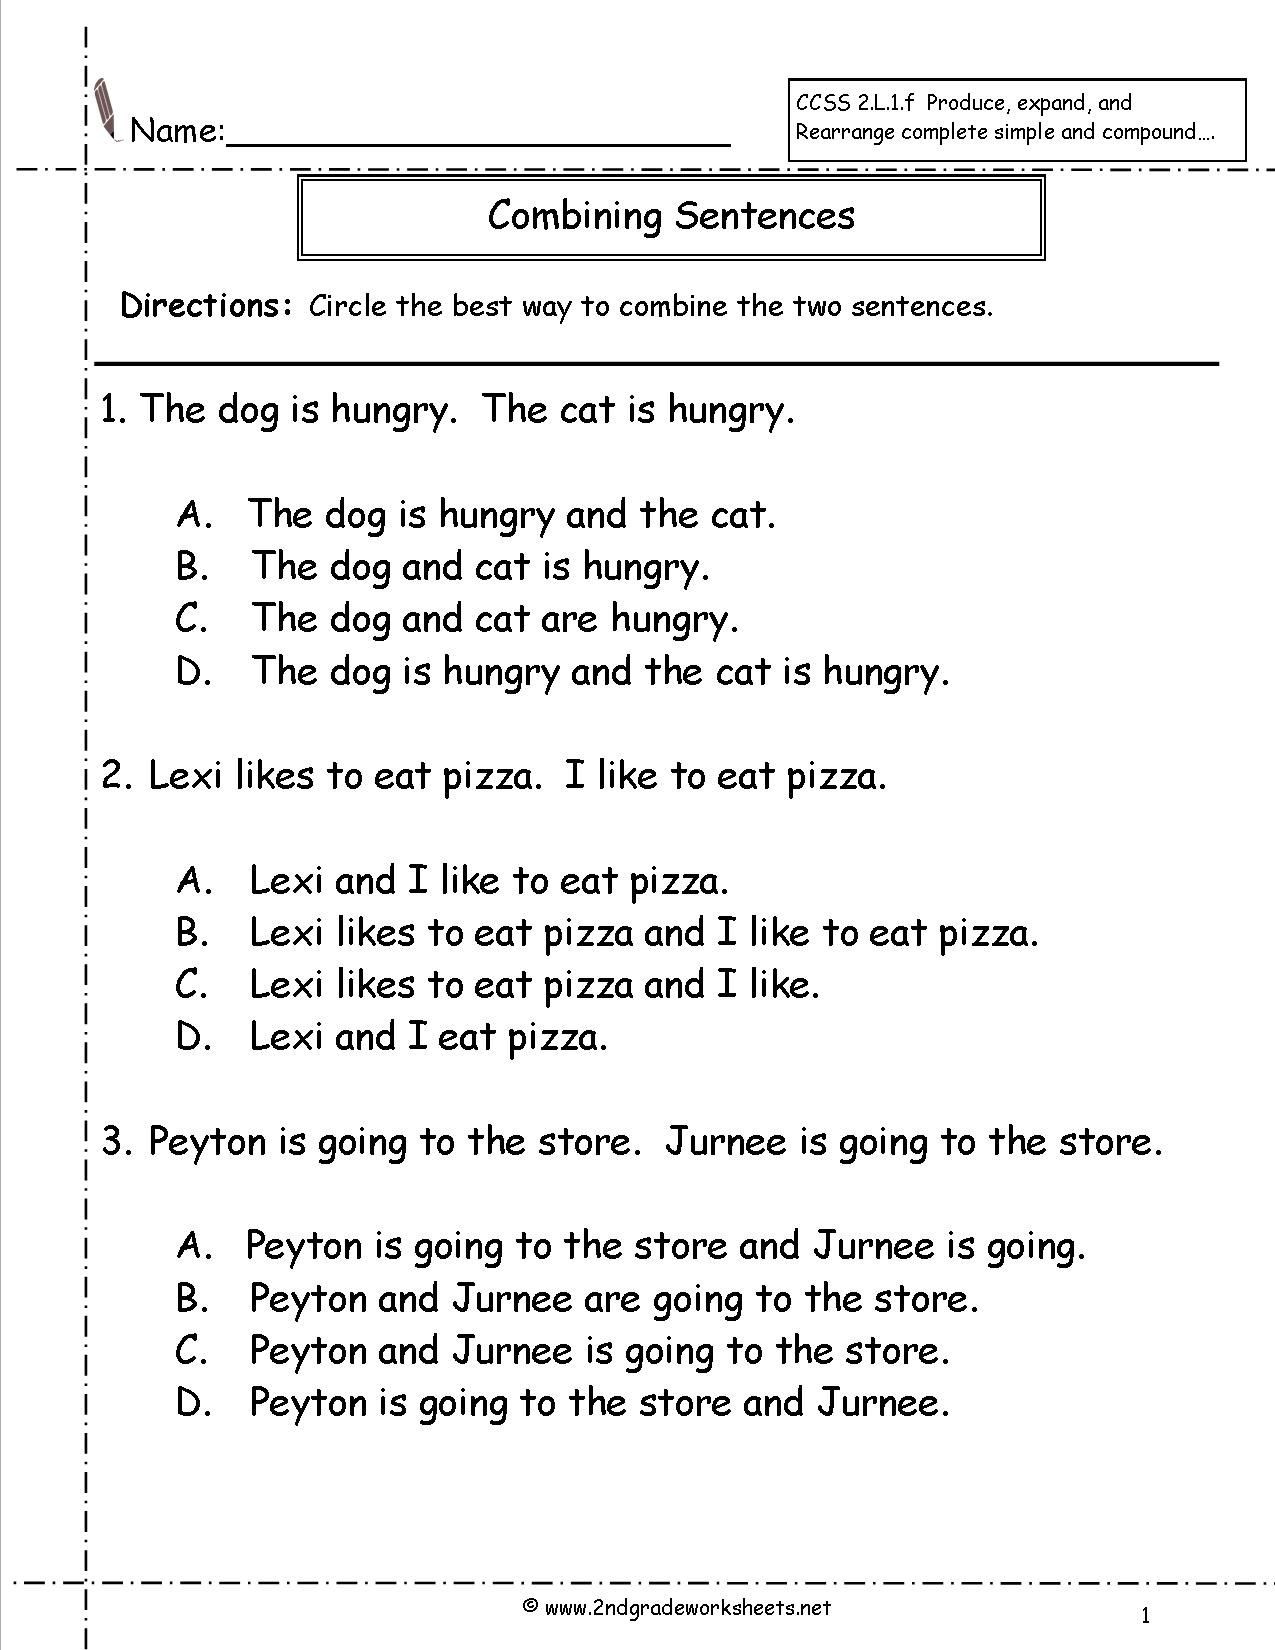 Combining Sentences Worksheets 5th Grade Bining Sentences Worksheet with Images